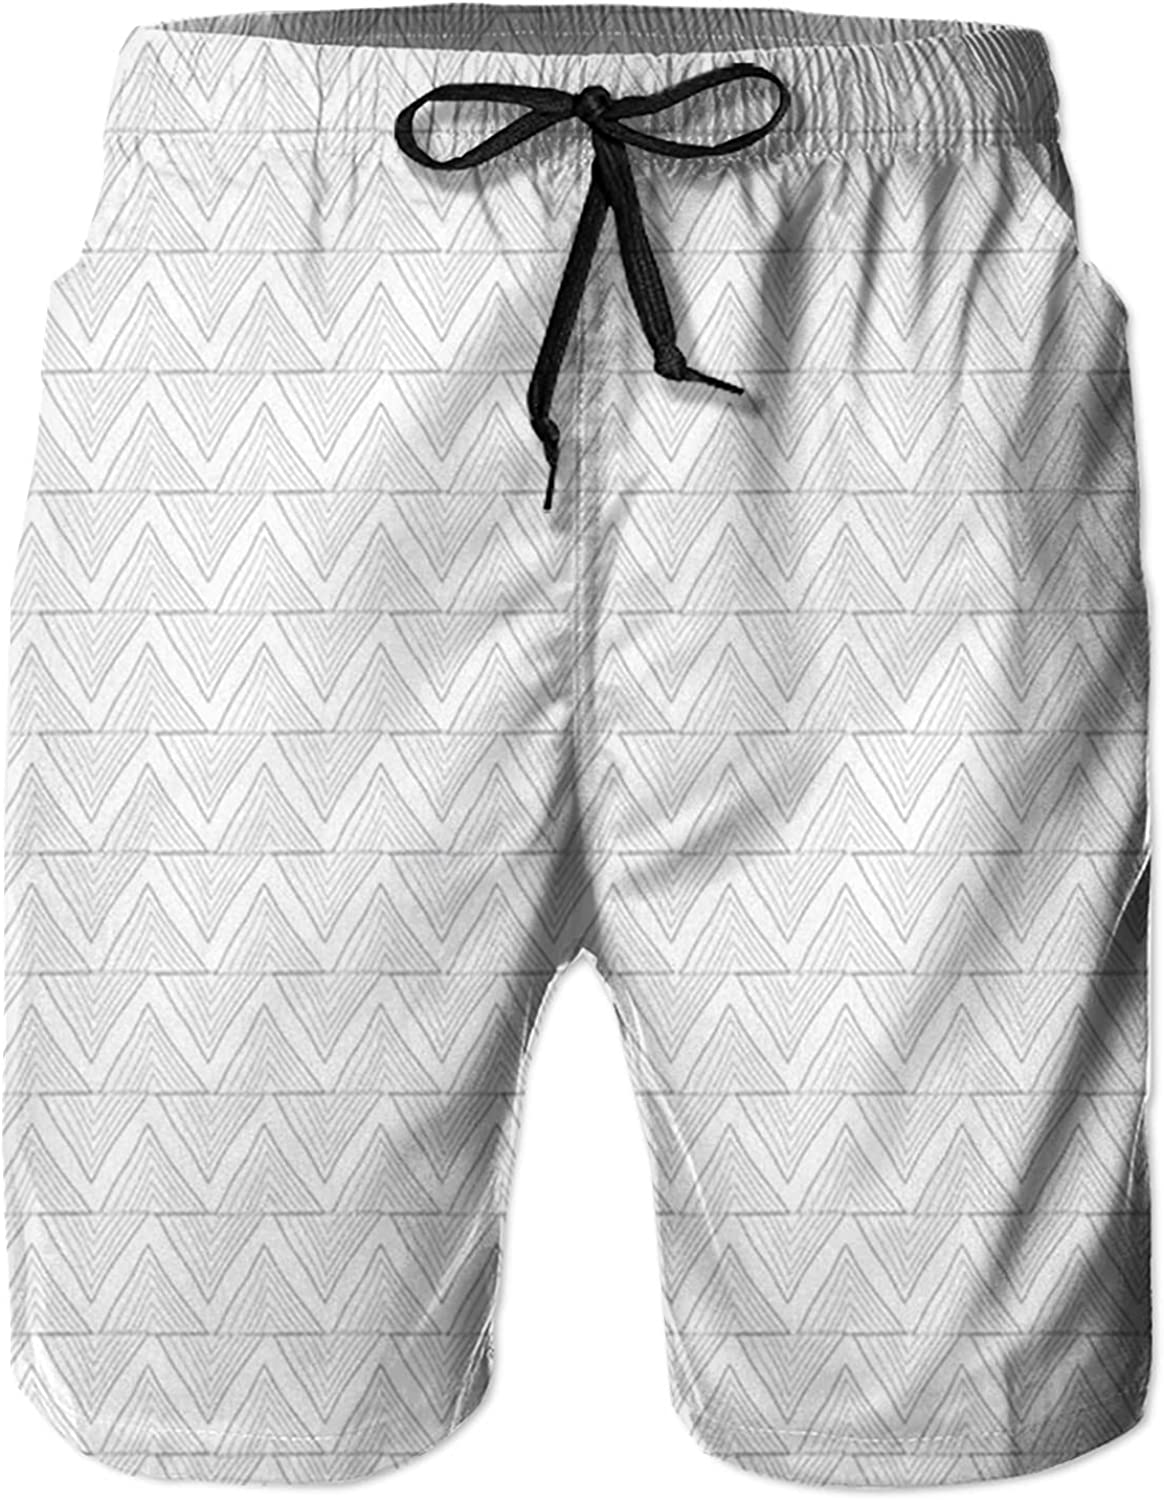 NC Men's Swim Trunks Quick Dry Beach Board Shorts Drawstring Lightweight with Elastic Waist and Pockets,Hand Drawn with Zigzag Lines Horizontal Borders Geometric M